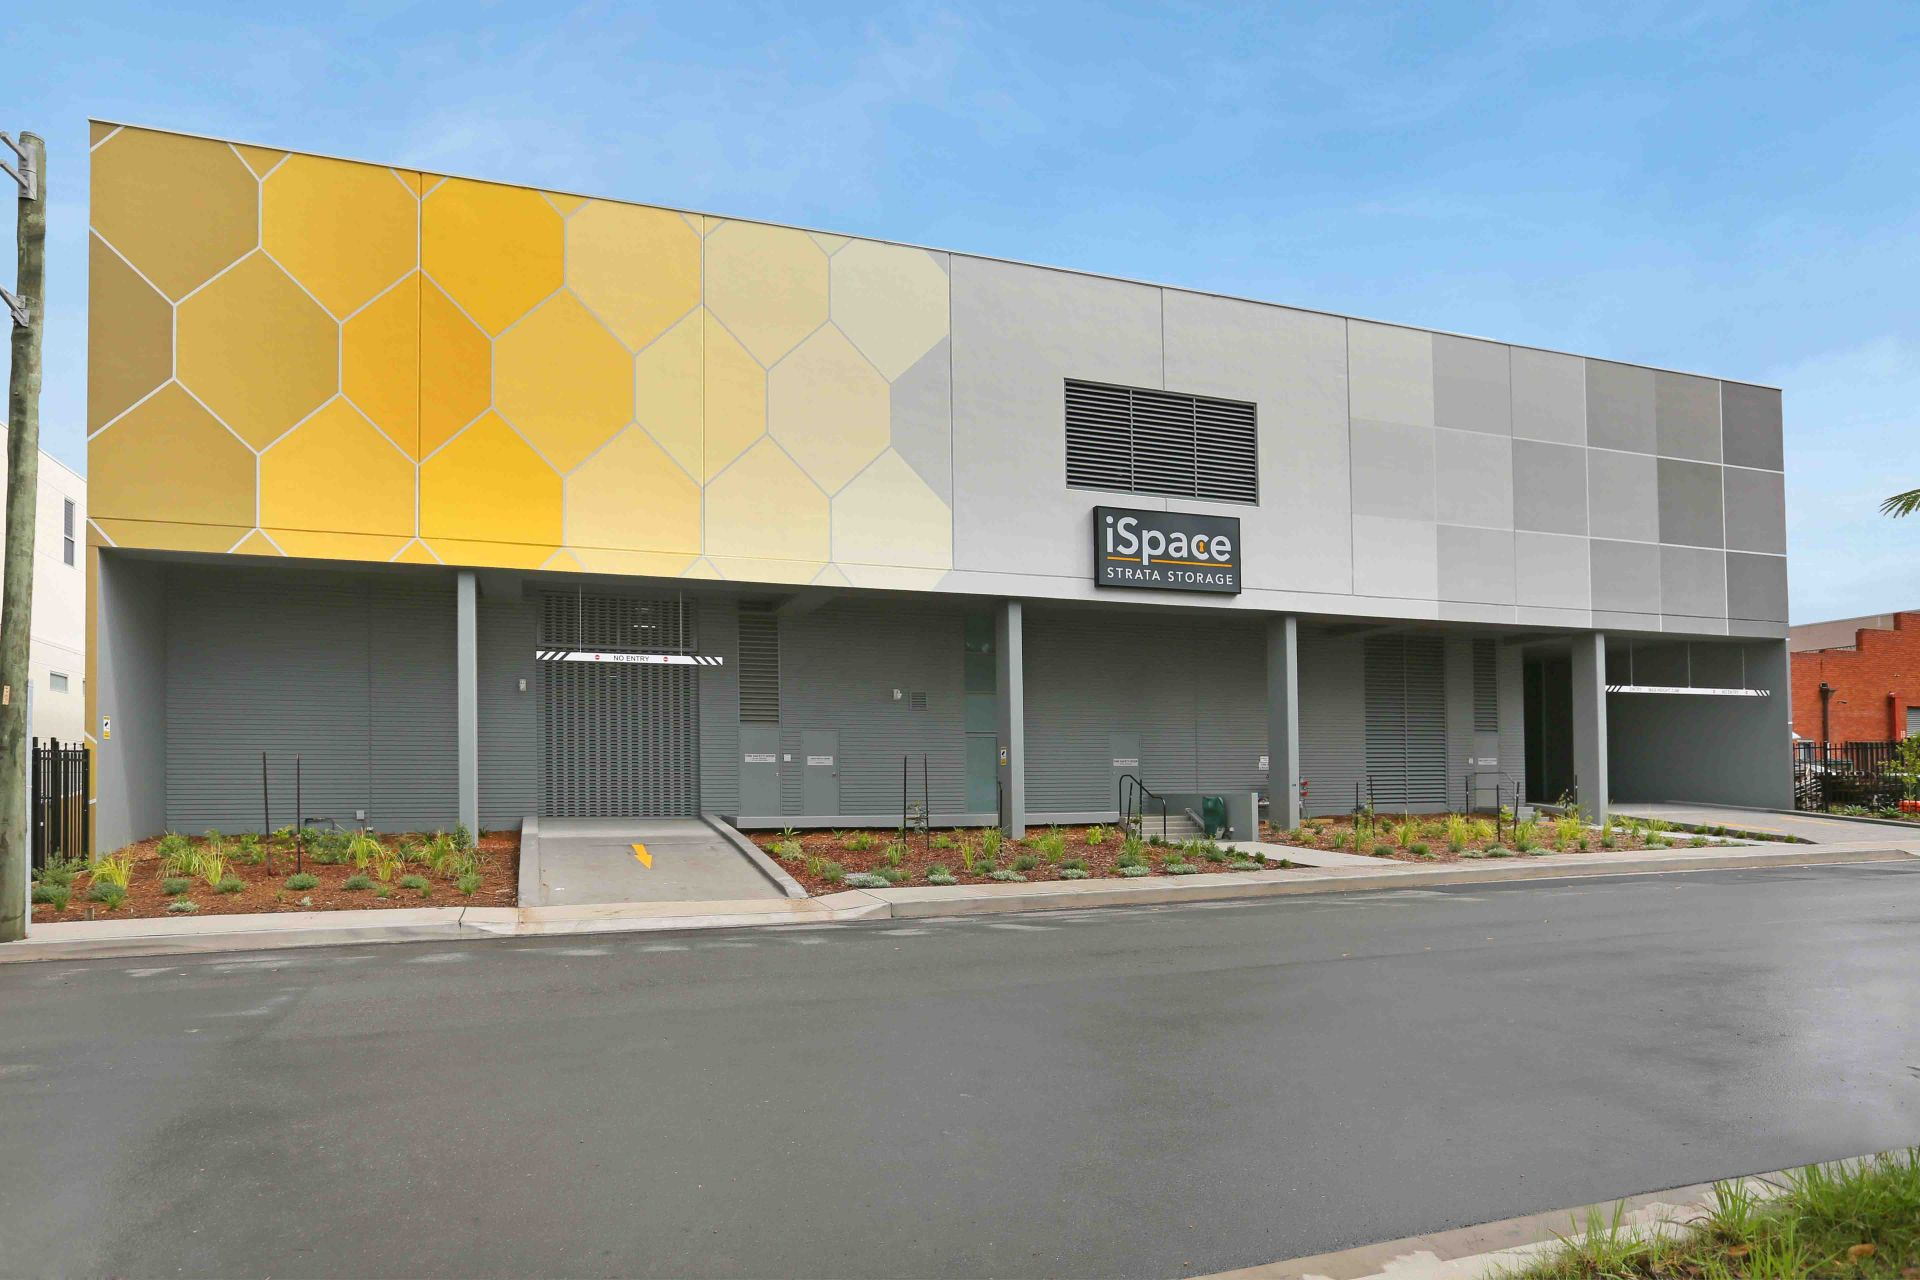 LEASED BY RYAN MCMAHON - STORAGE UNIT